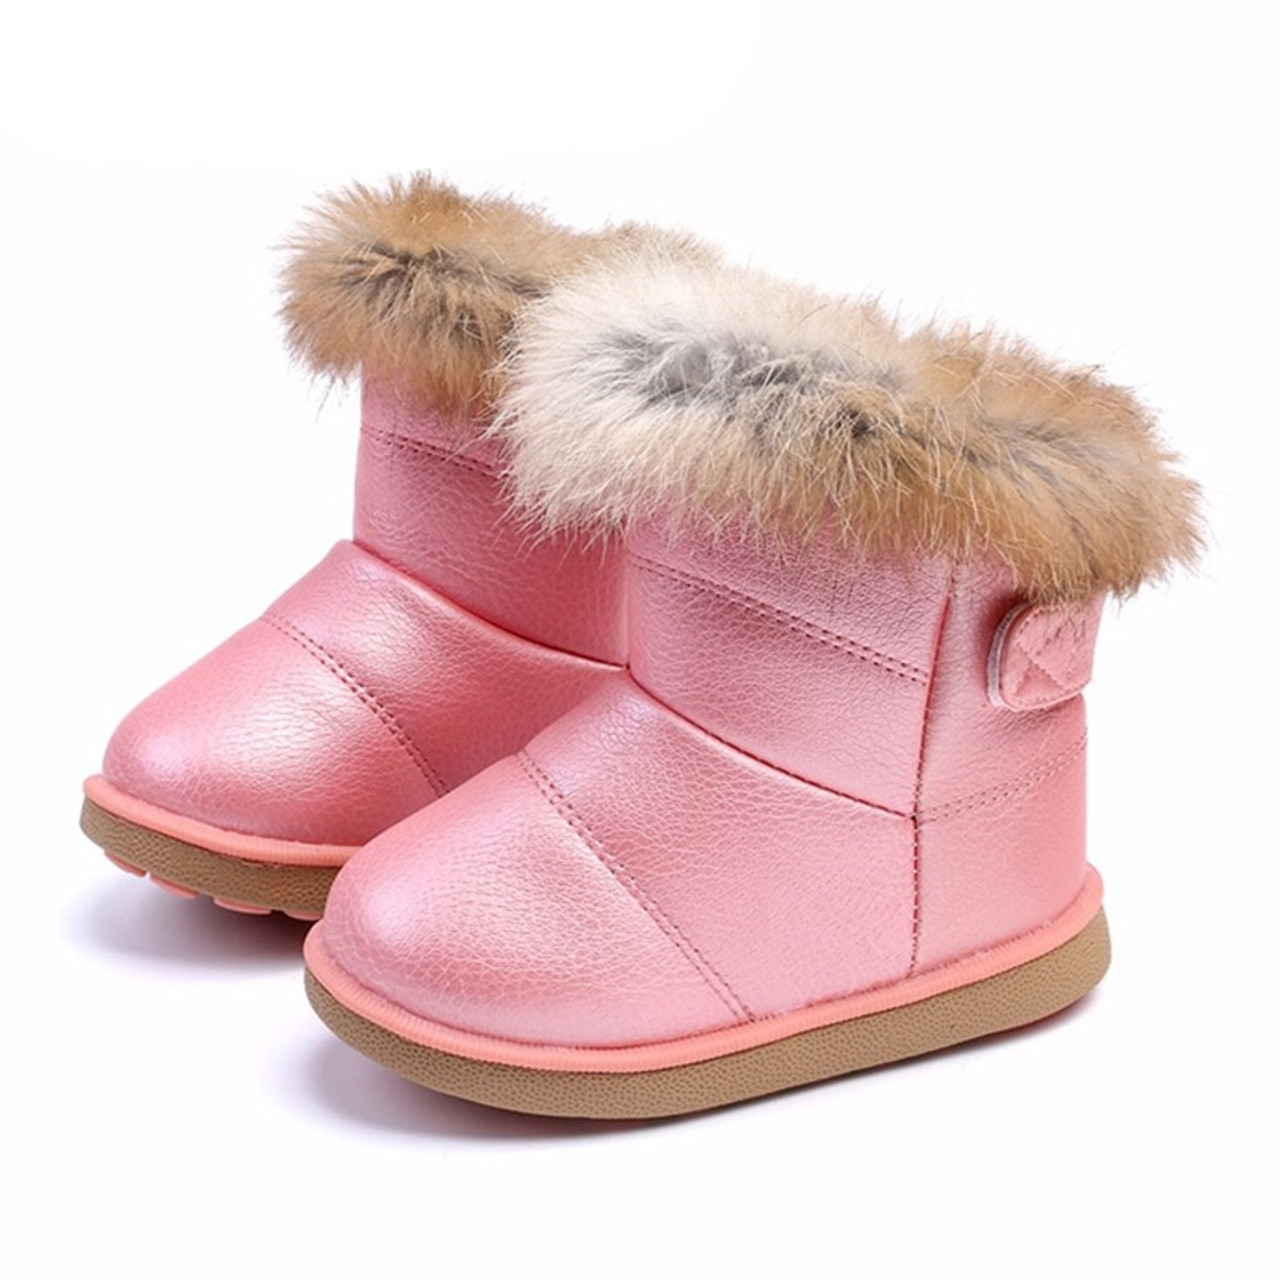 Winter Toddler Baby Snow Boots Shoes